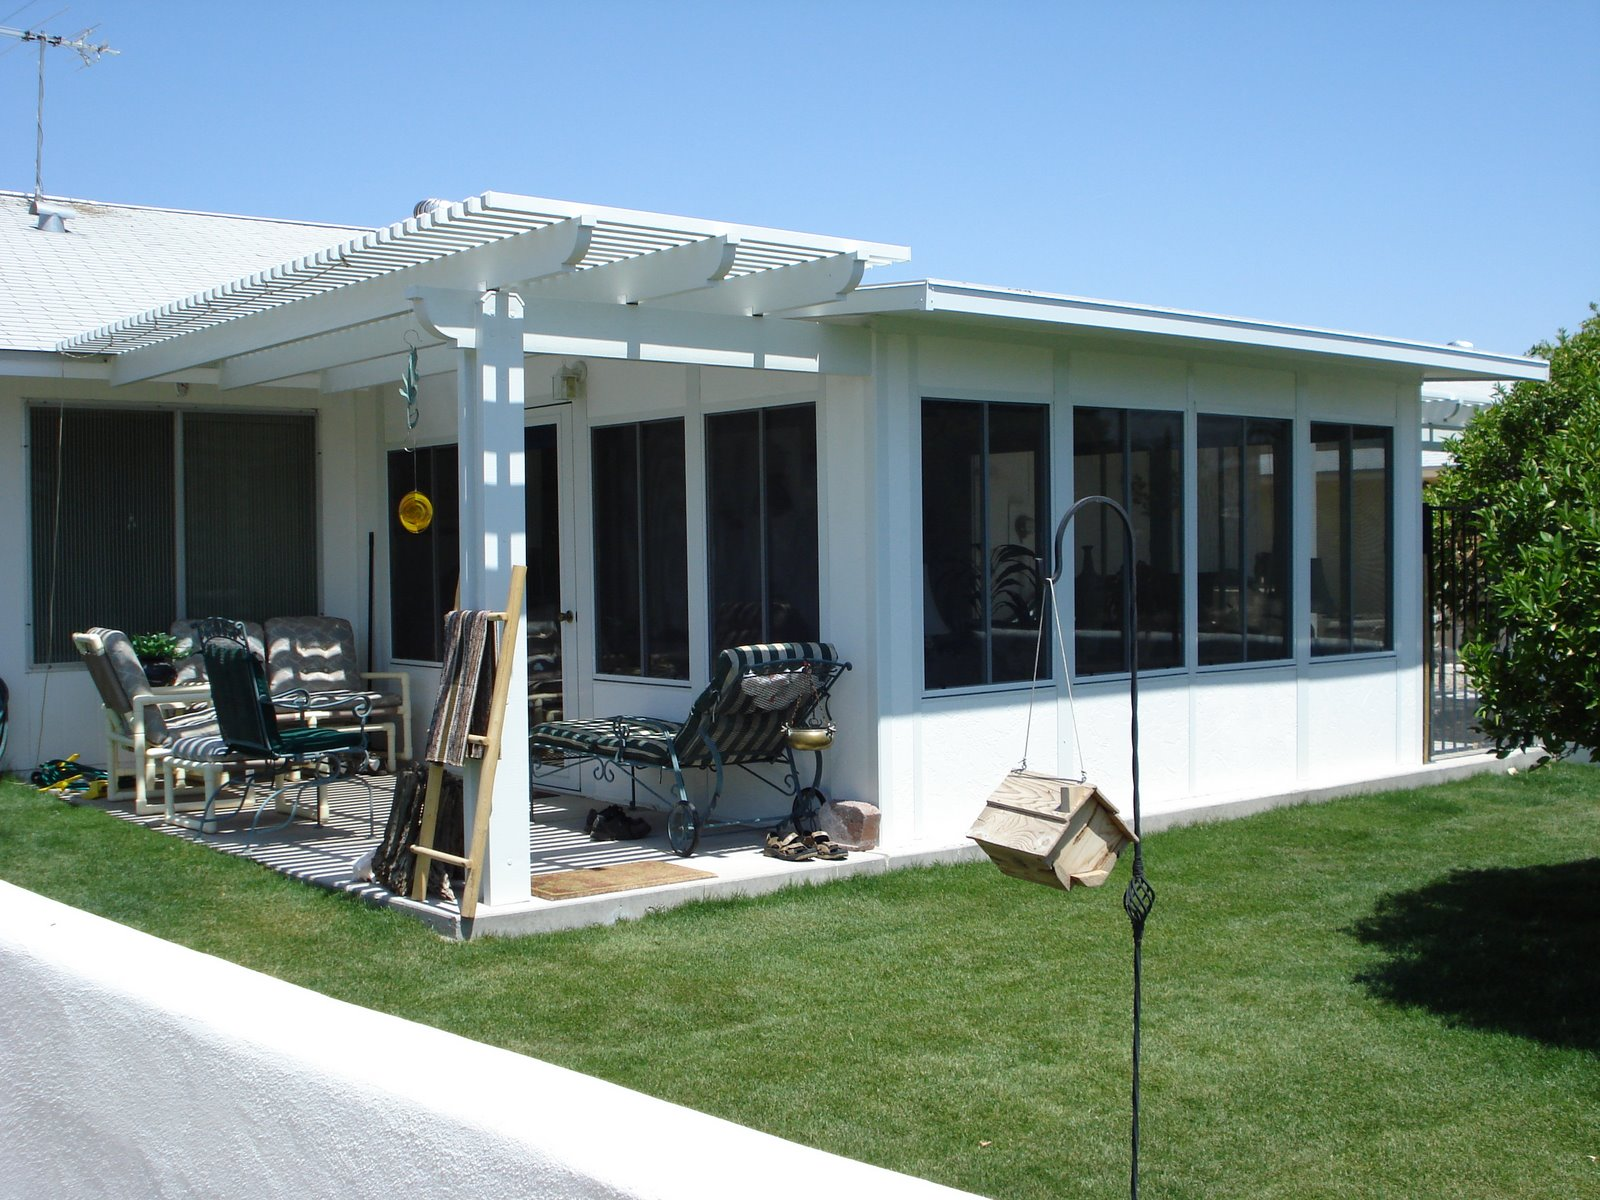 Modular sunroom in sun city arizona arizona enclosures for Modular sunroom